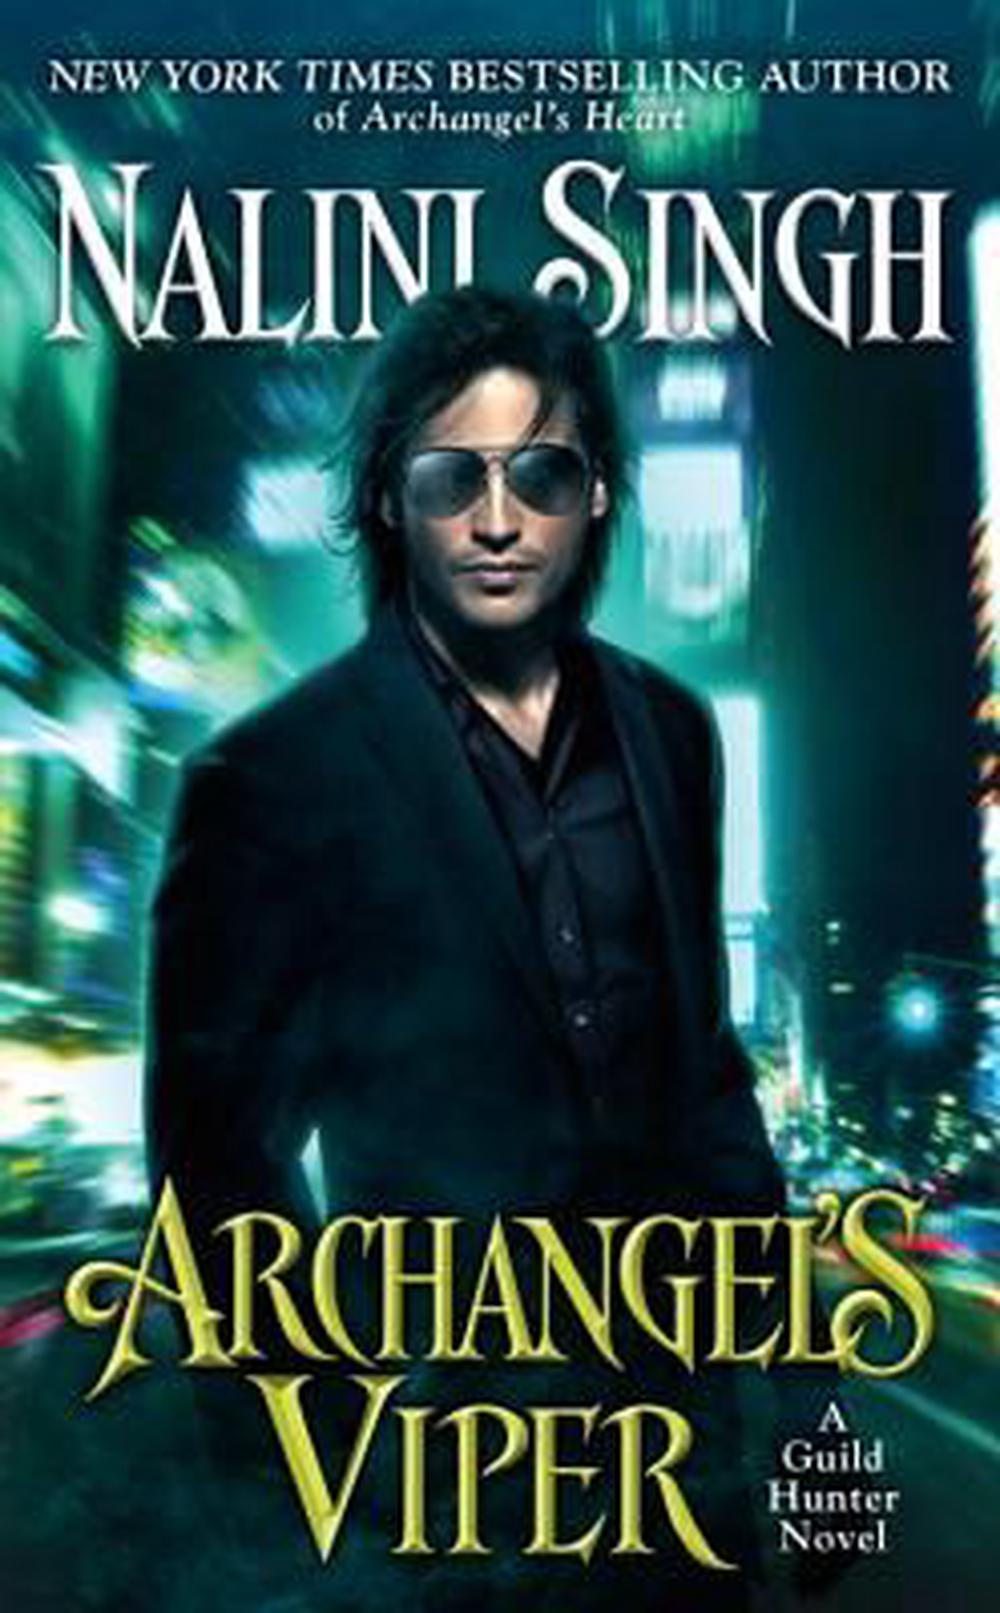 Archangel's Viper (Guild Hunter Novel)